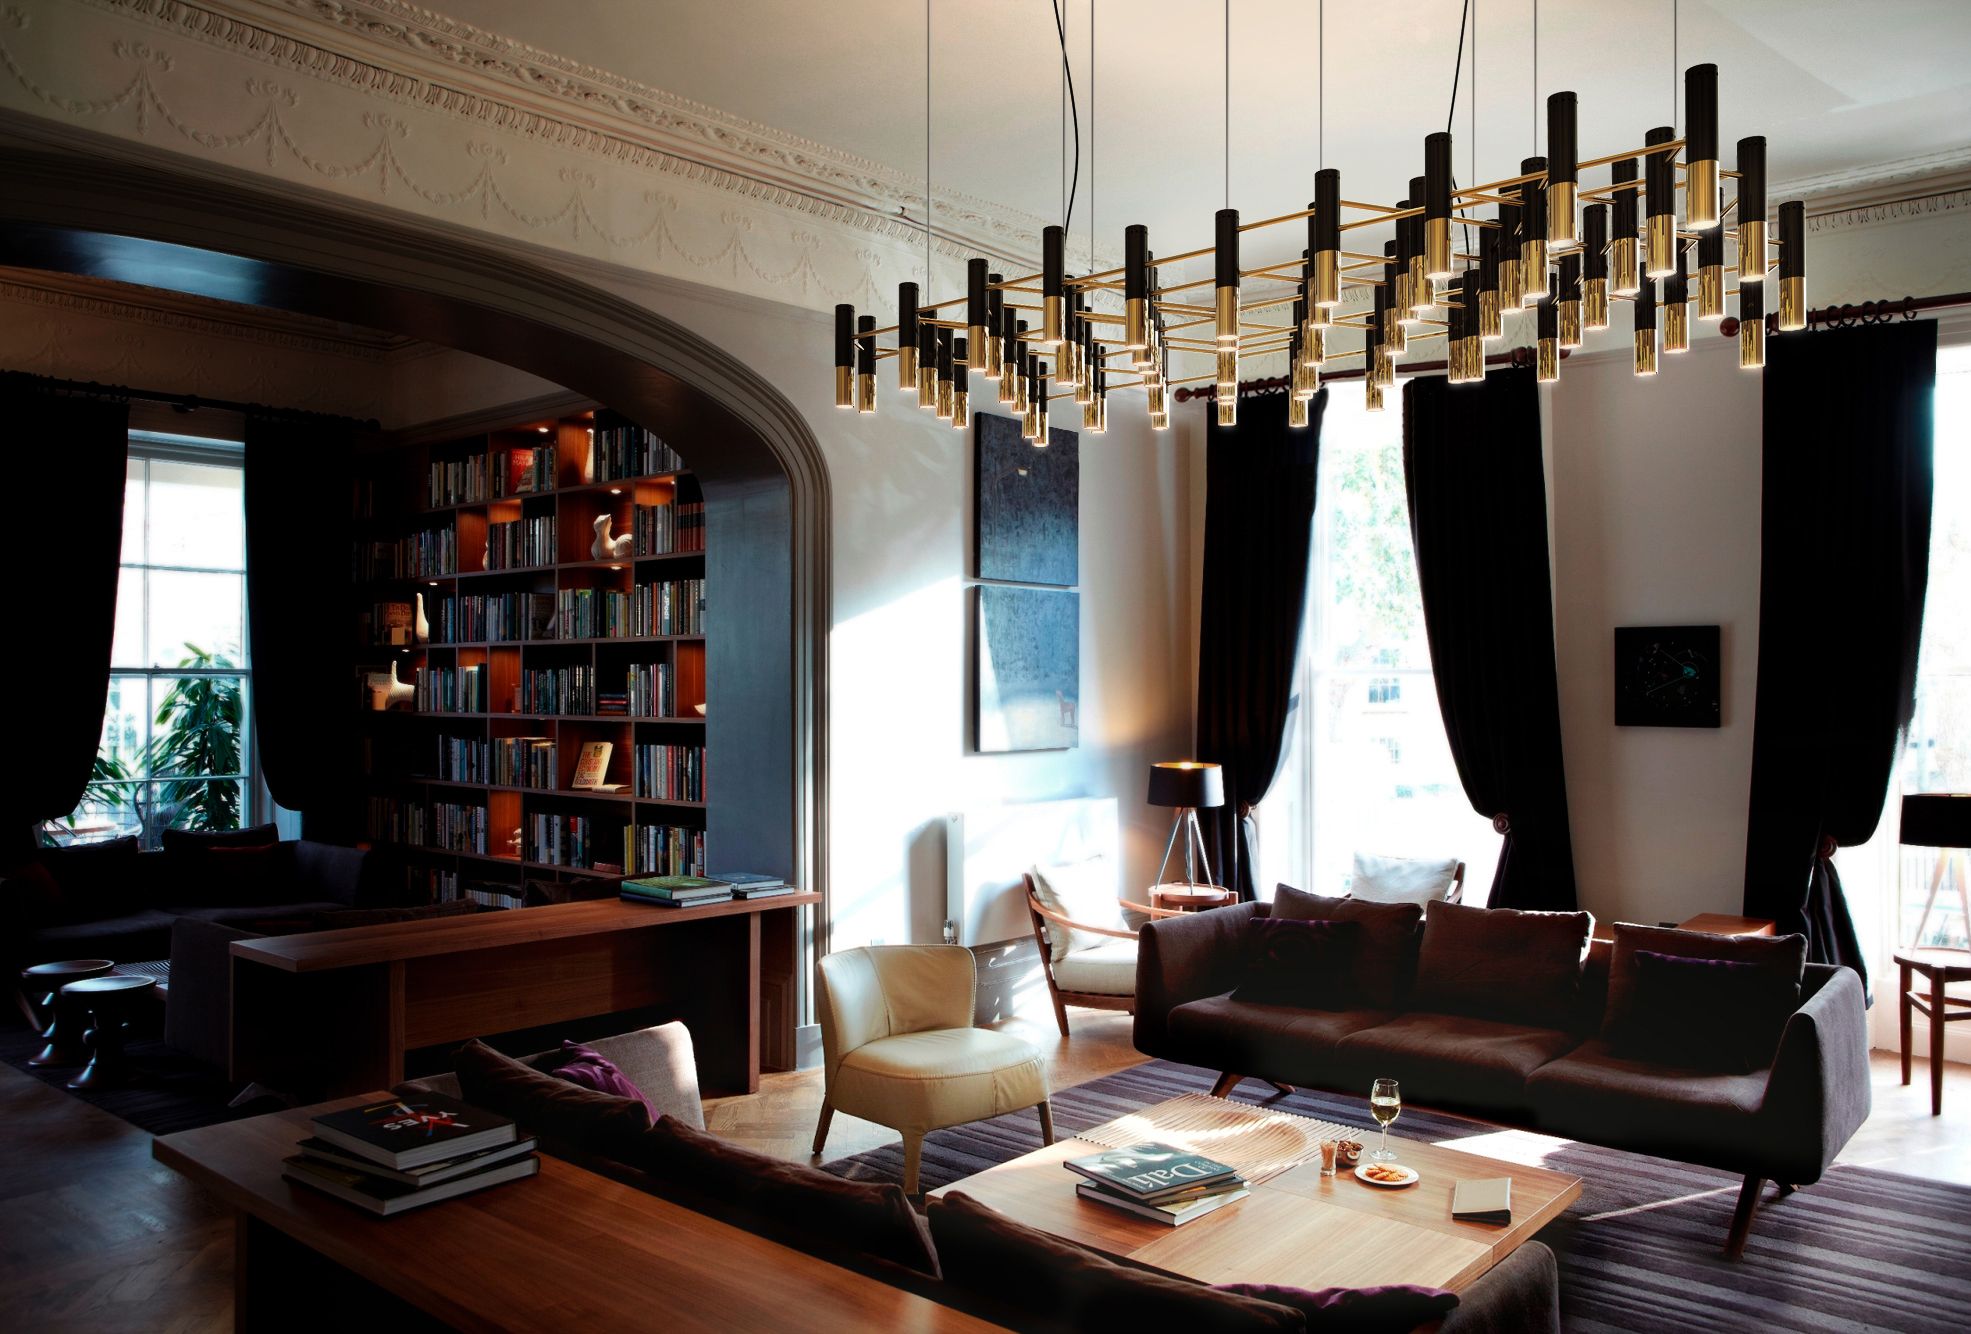 Top 10 Modern Suspension Lamps for your Home Decor